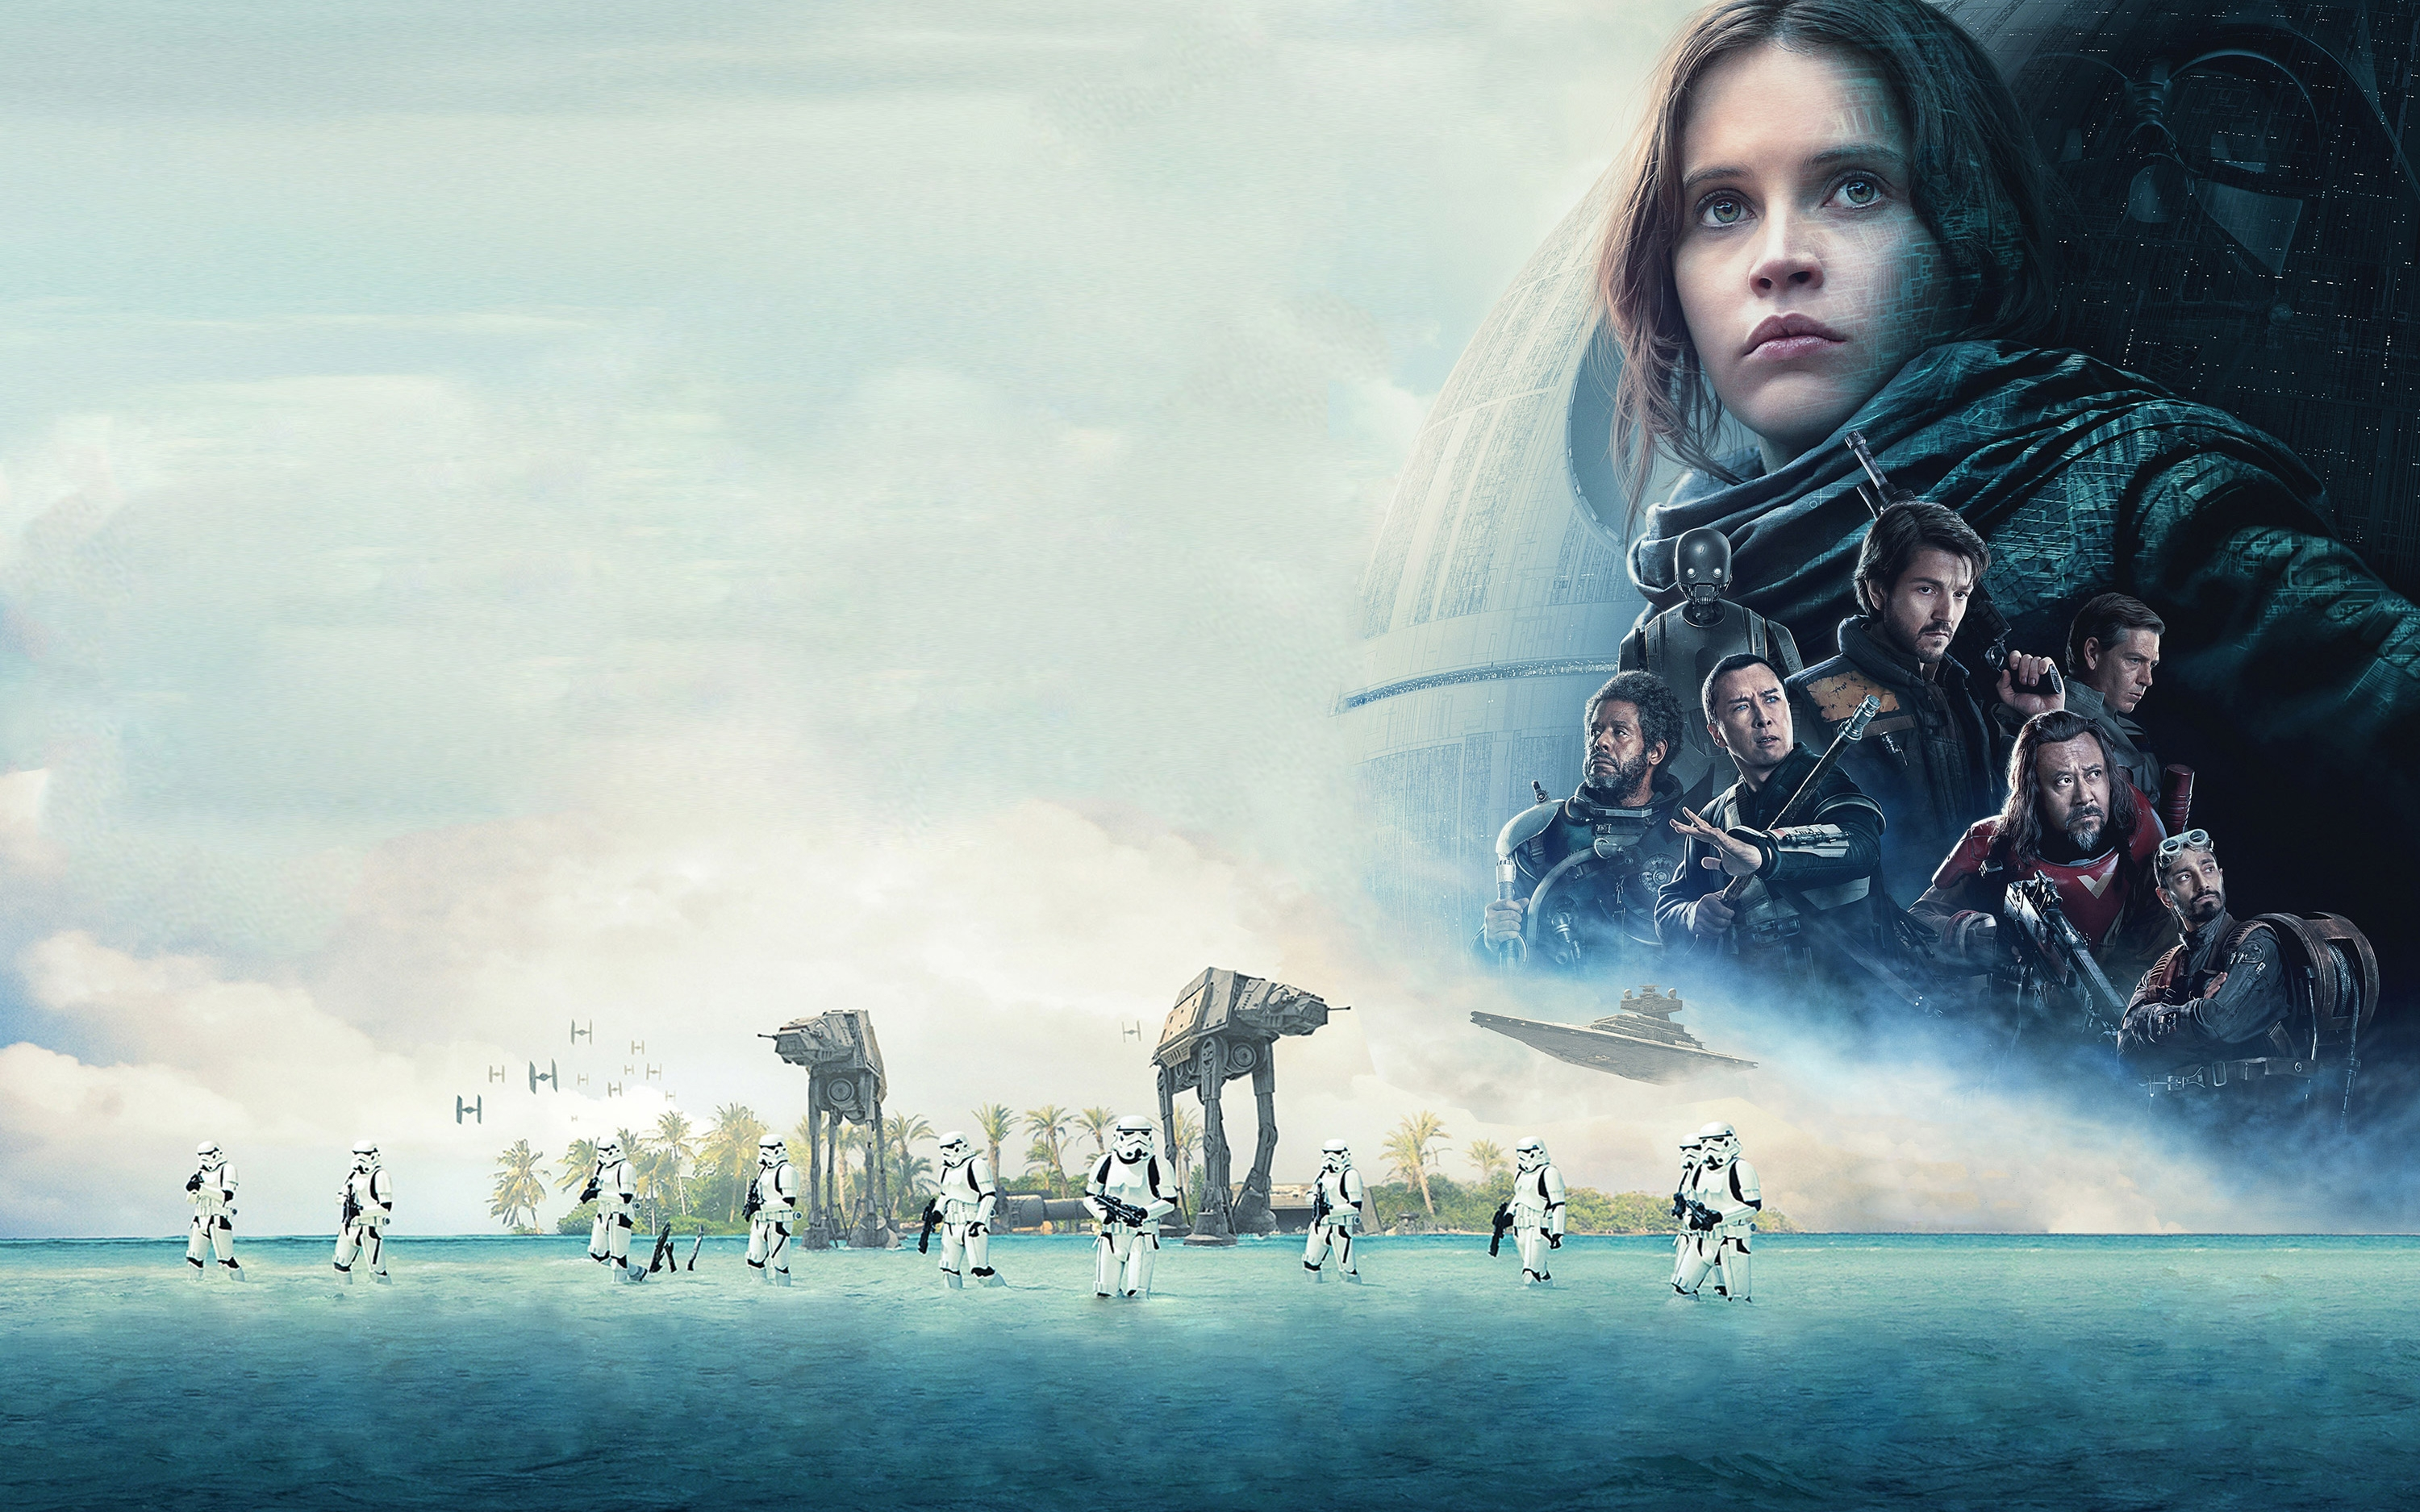 A Star Wars Story, Donnie Yen, Felicity Jones, Stormtroopers - Solo A Star Wars Story , HD Wallpaper & Backgrounds